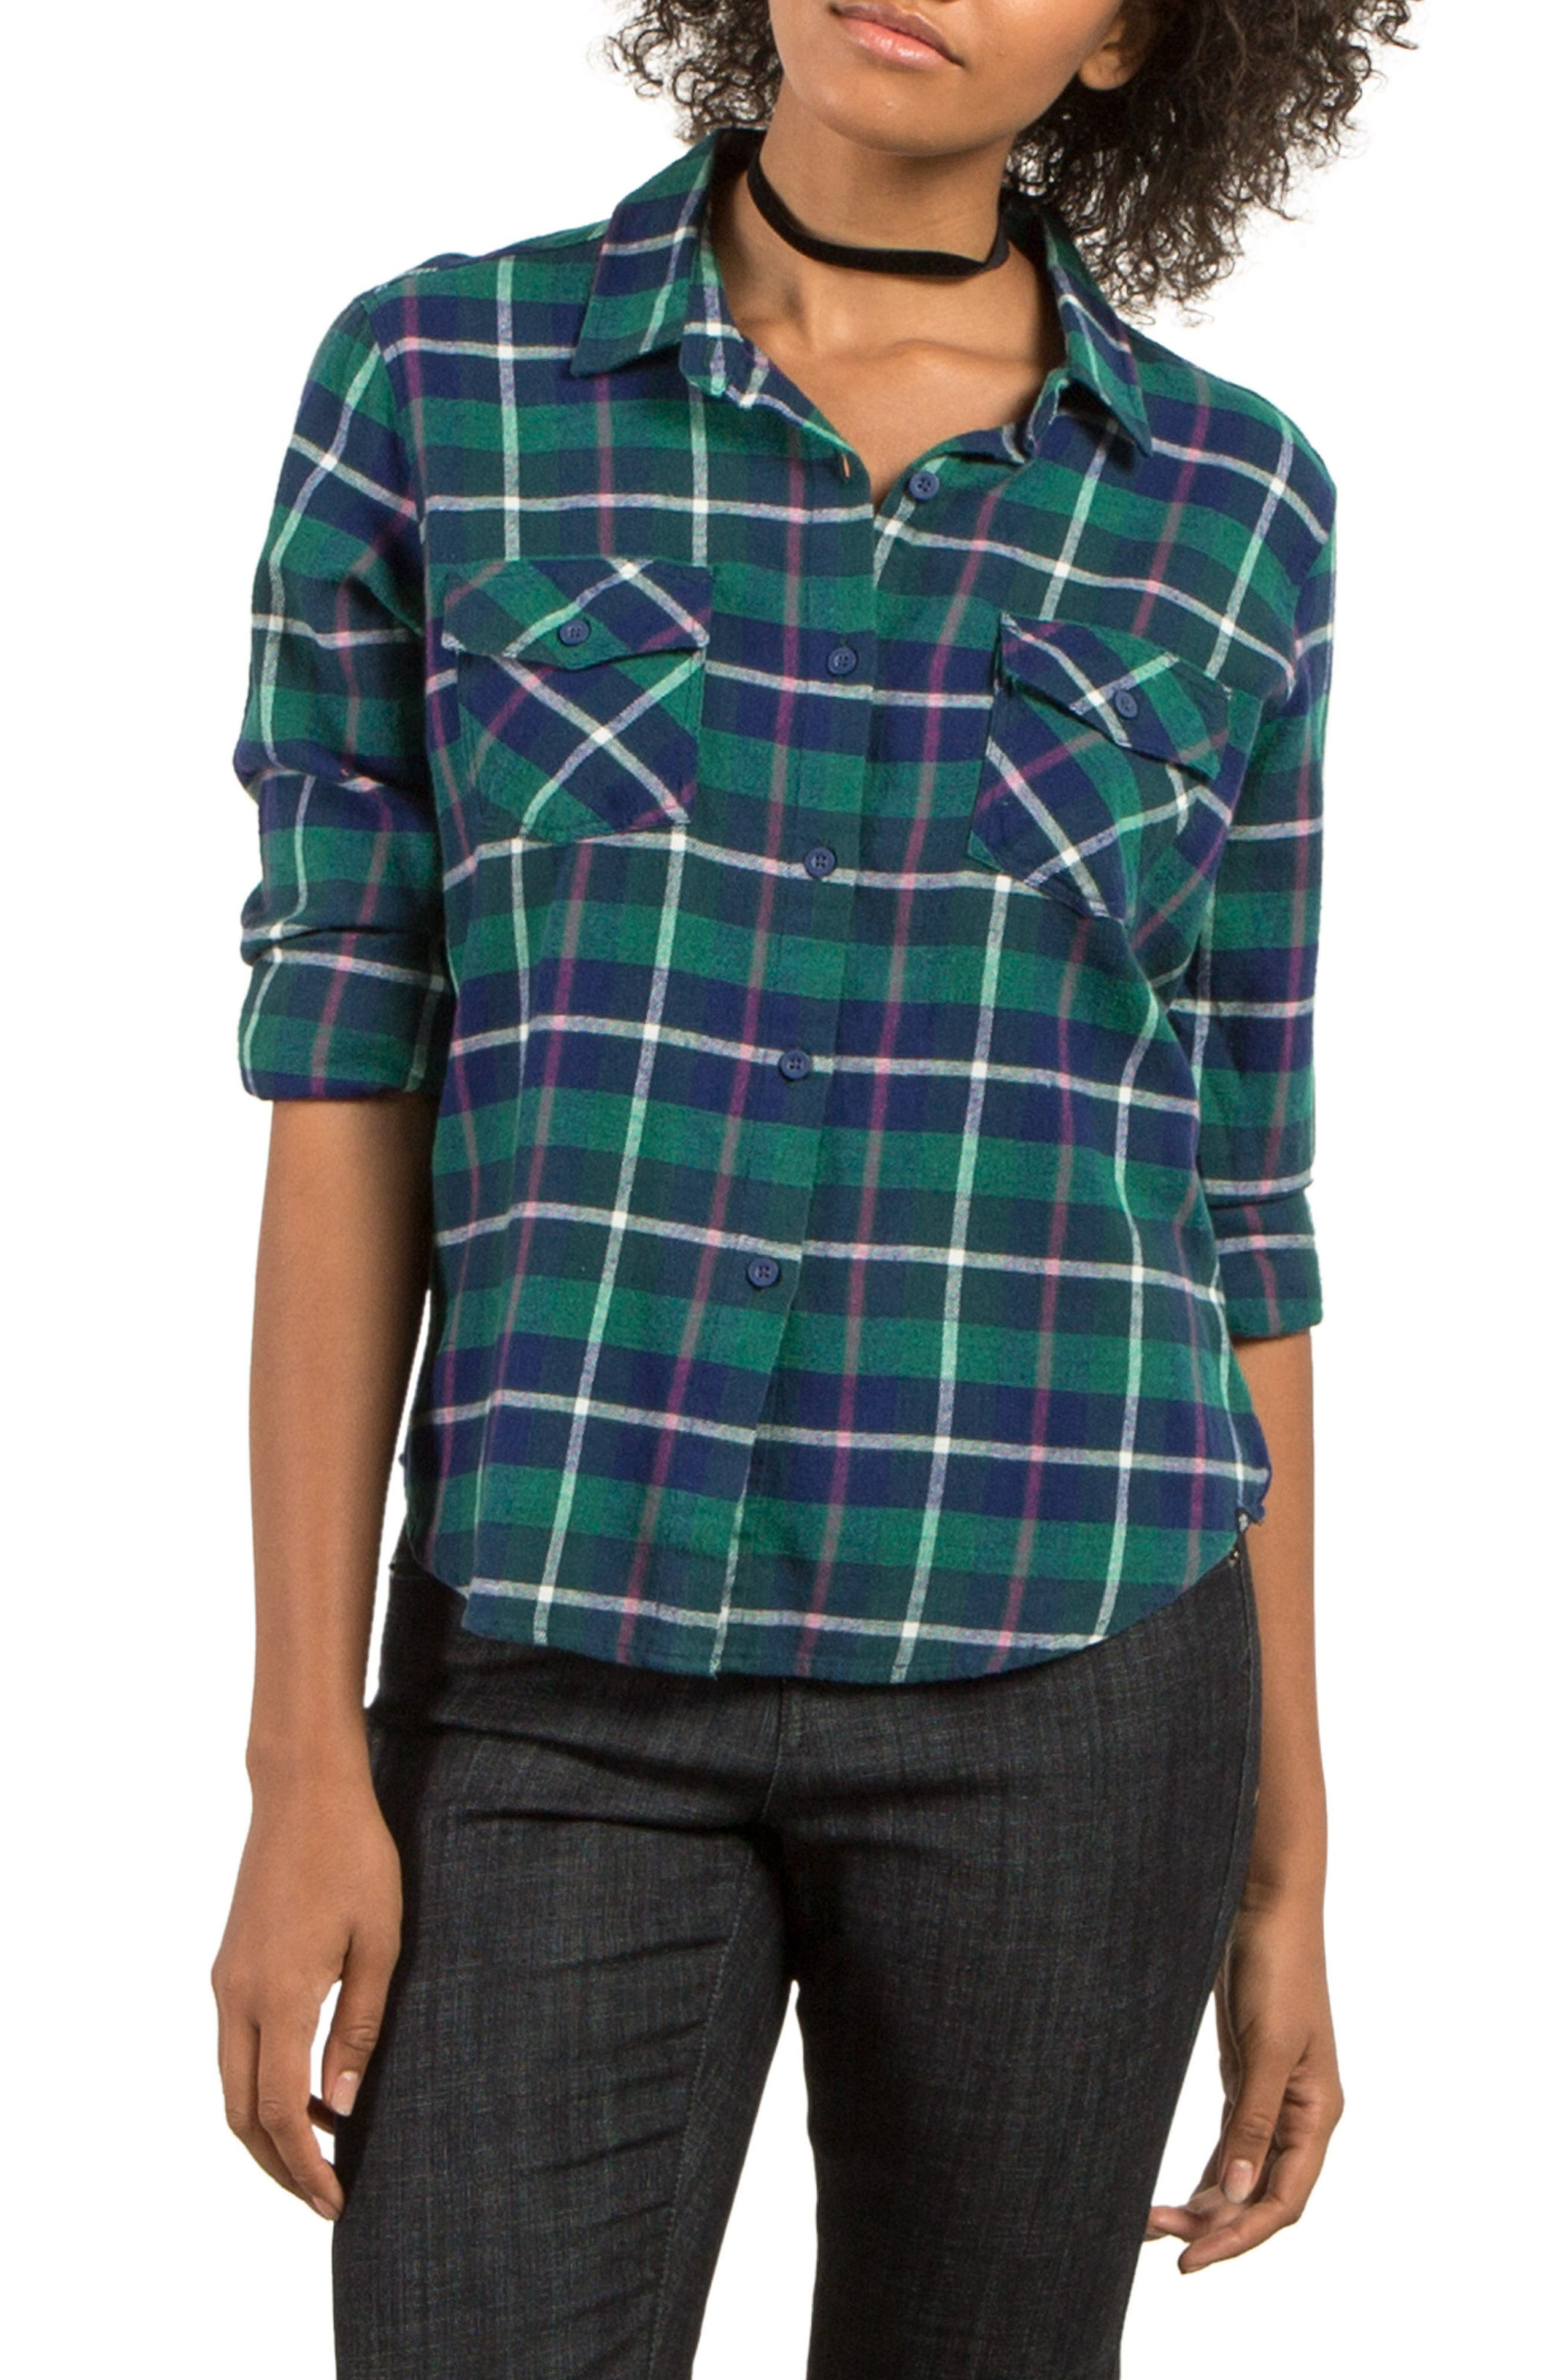 New Flame Plaid Flannel Shirt,                         Main,                         color, Midnight Green